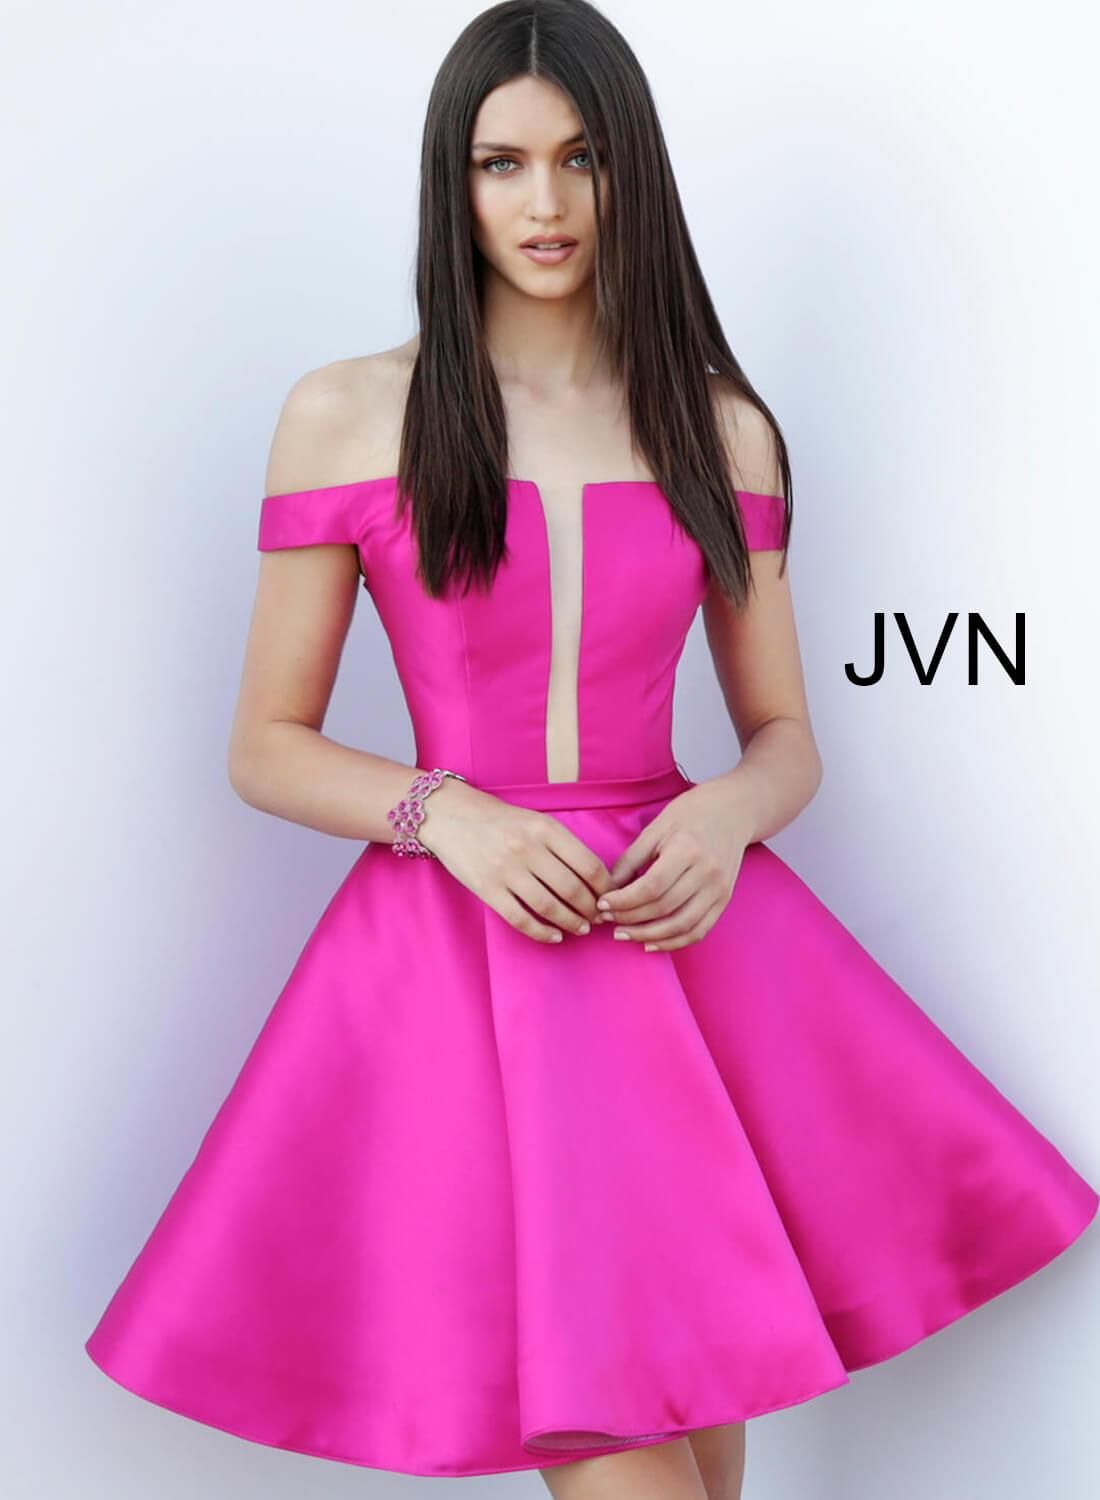 Jvn night dresses pinterest homecoming dresses dresses